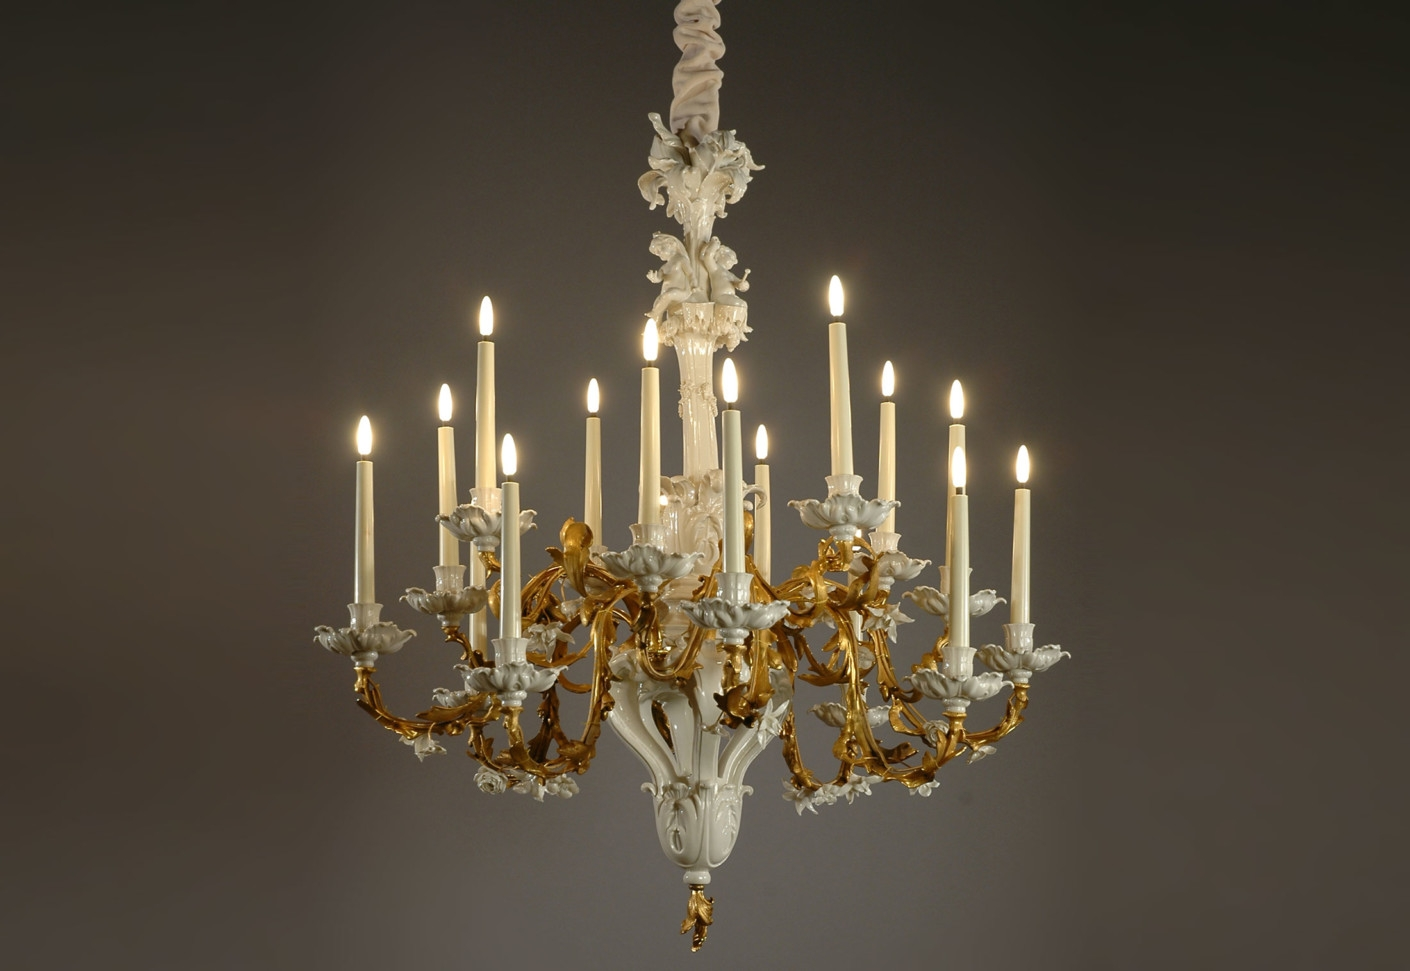 Baroque Chandelier Porzellan Manufaktur Nymphenburg Stylepark With Baroque Chandelier (Image 5 of 15)